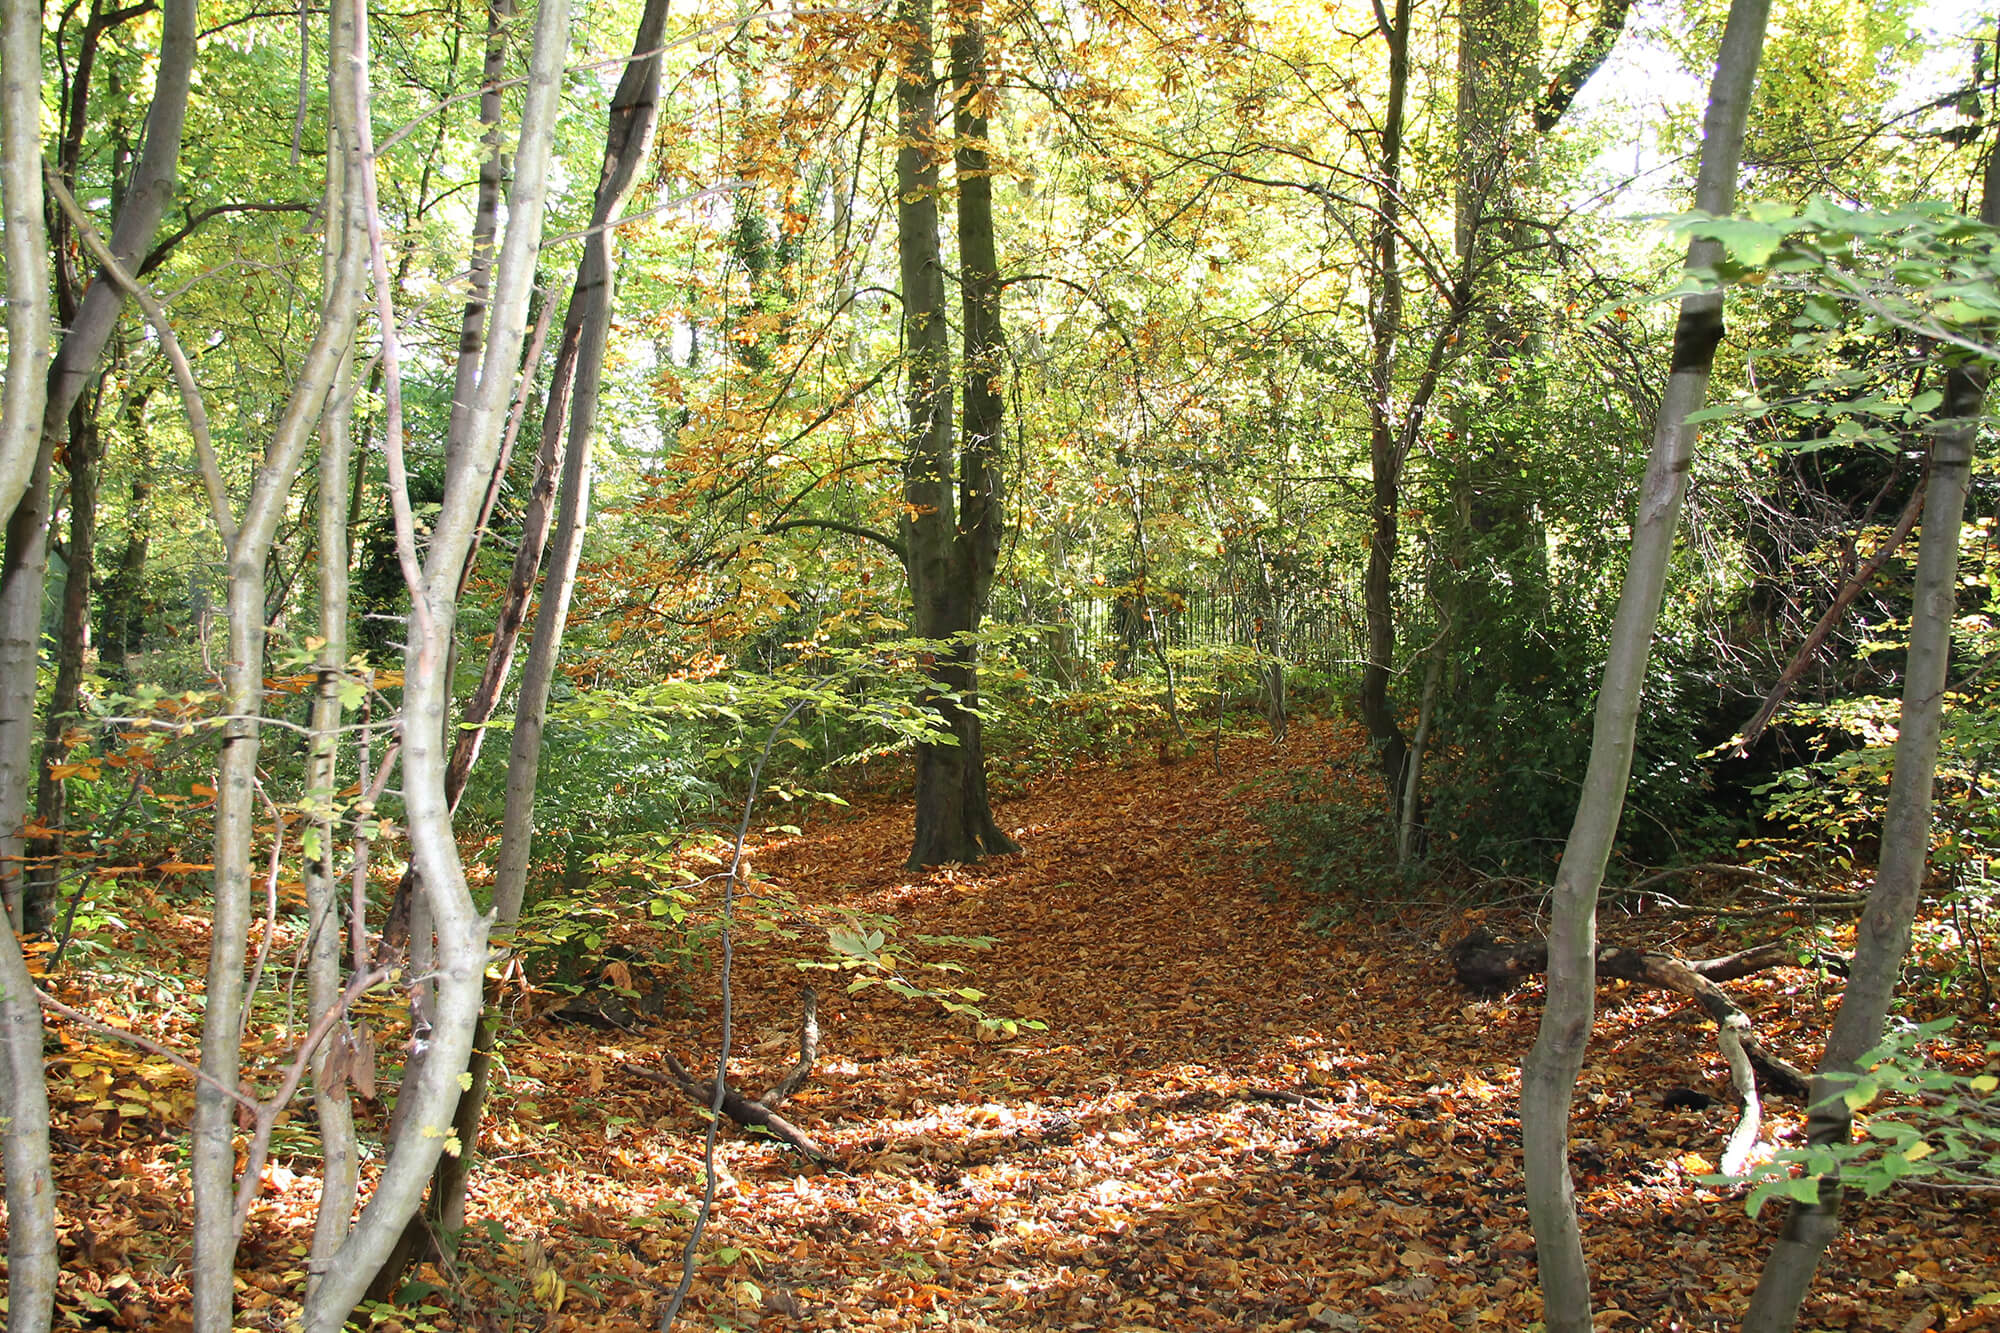 The forest used for outdoor learning and forest school sessions